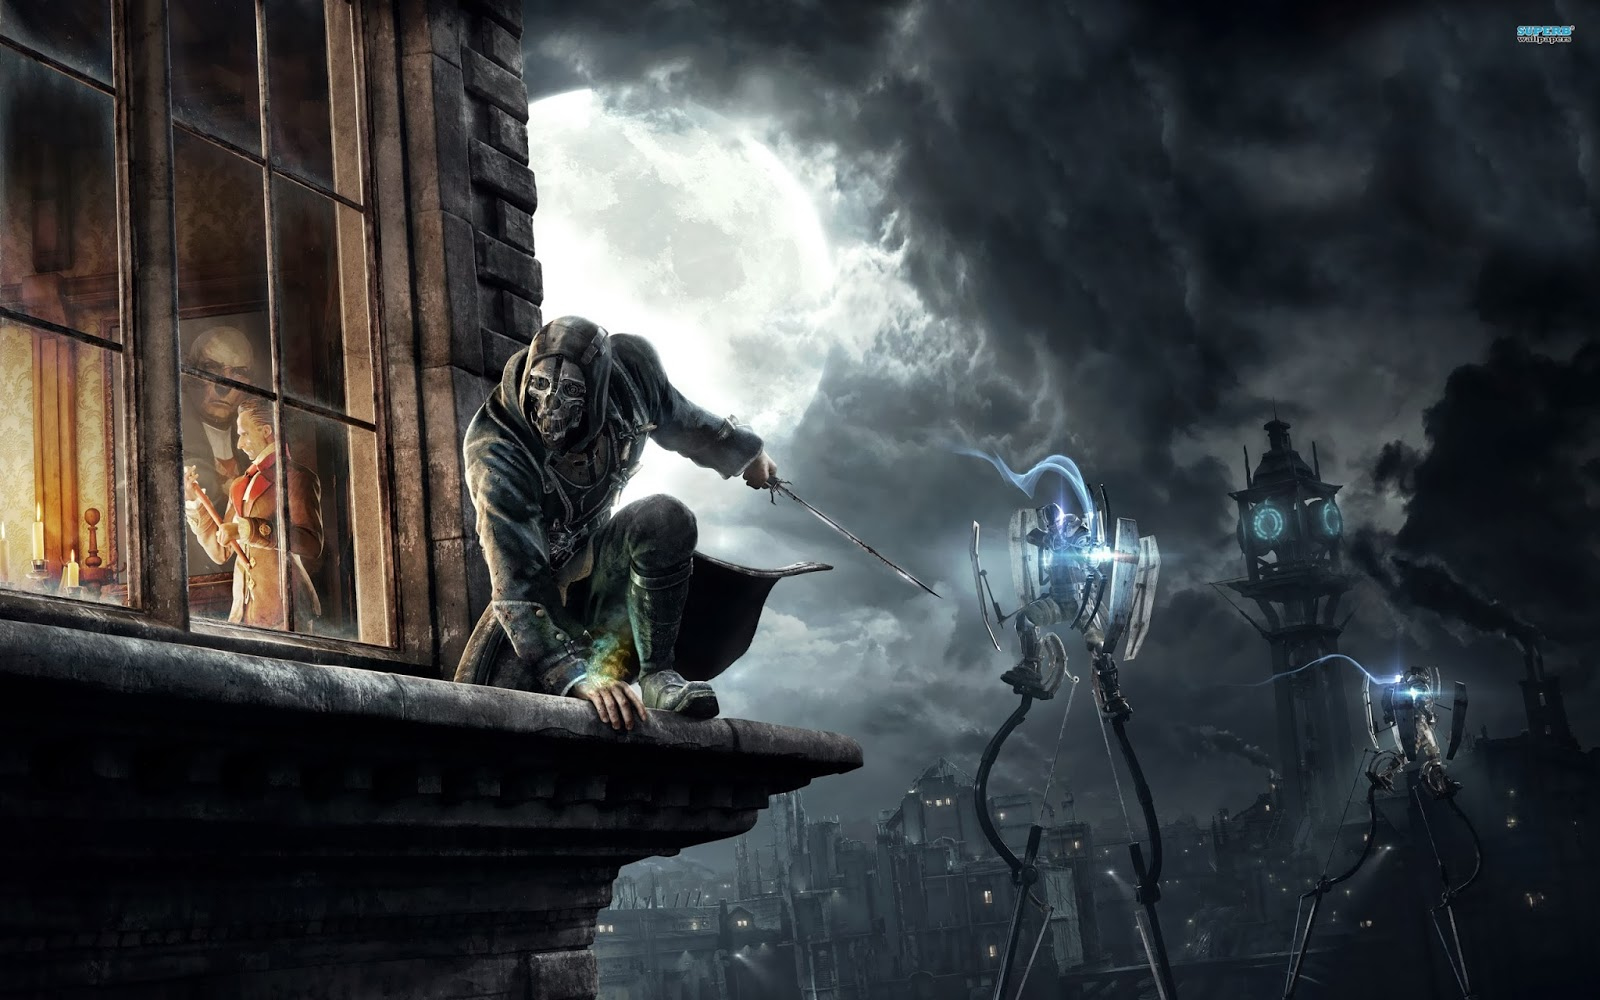 AuthorQuest: Late to the Game: Dishonored